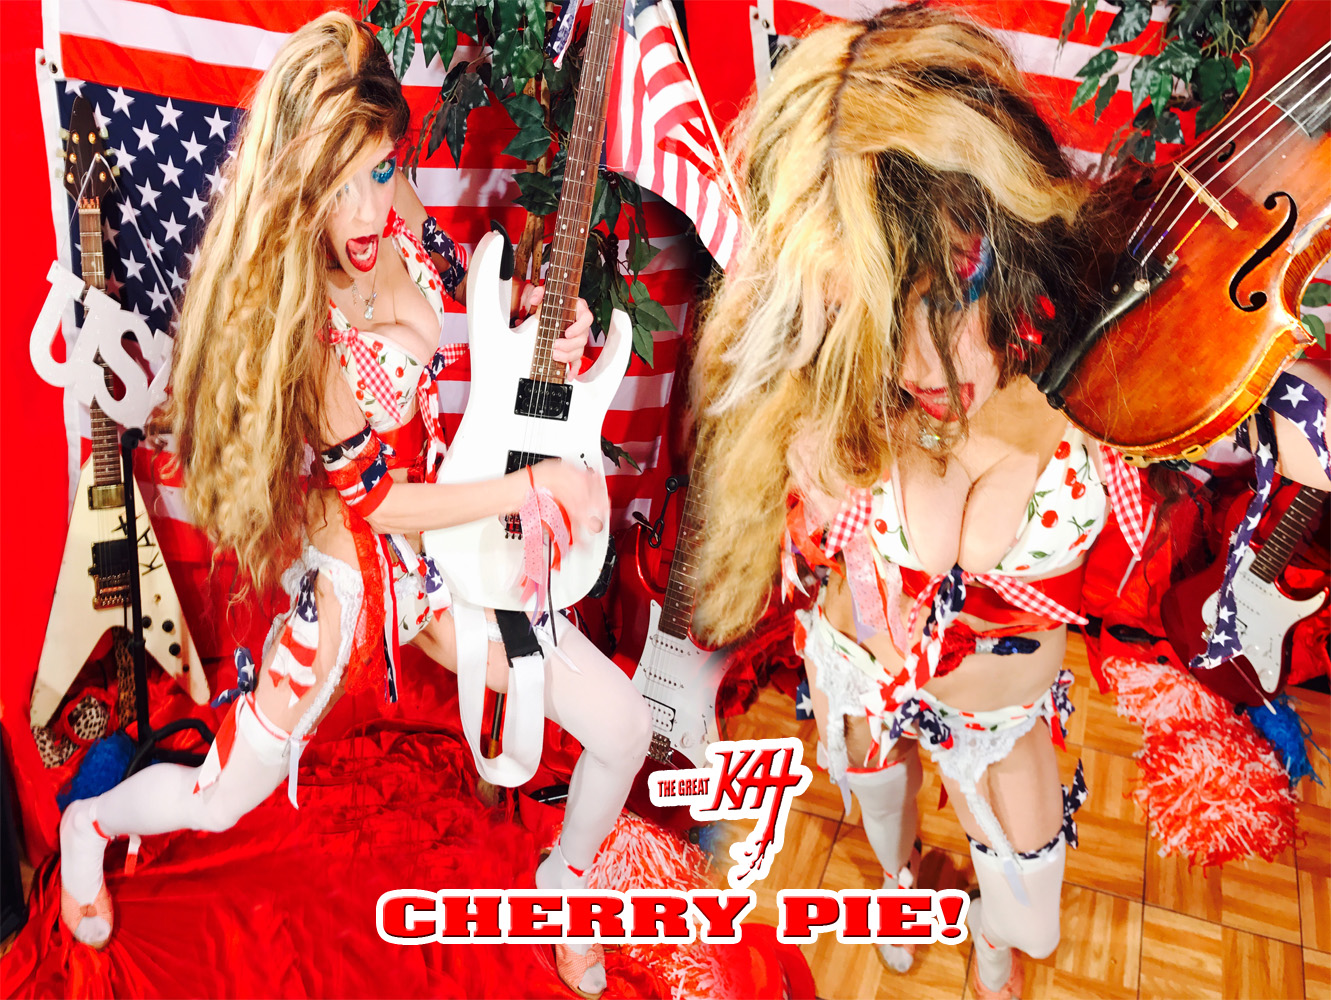 "CHERRY PIE! THE GREAT KAT SHREDS SARASATE'S ""CARMEN FANTASY""!"